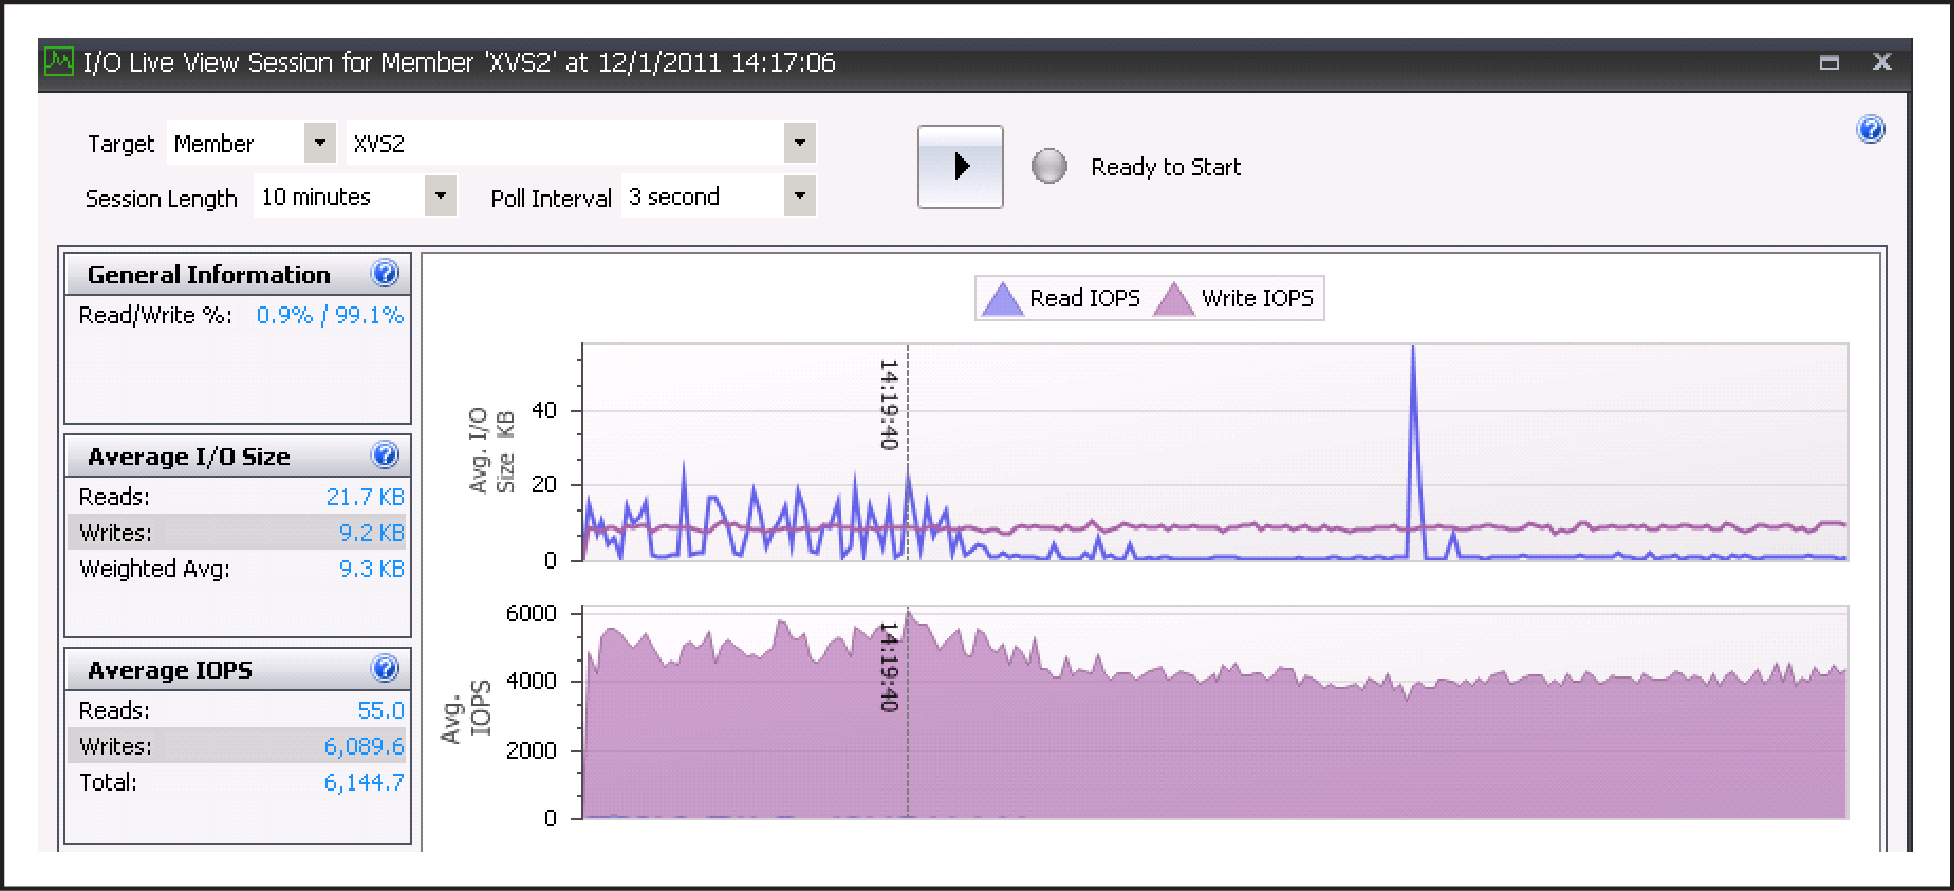 Figure 13 IOPS on one of the EqualLogic array during login storm 1270 VMs Note: The above SAN HQ chart shows the peak IOPS of 6200 during the login storm on one of the array members.